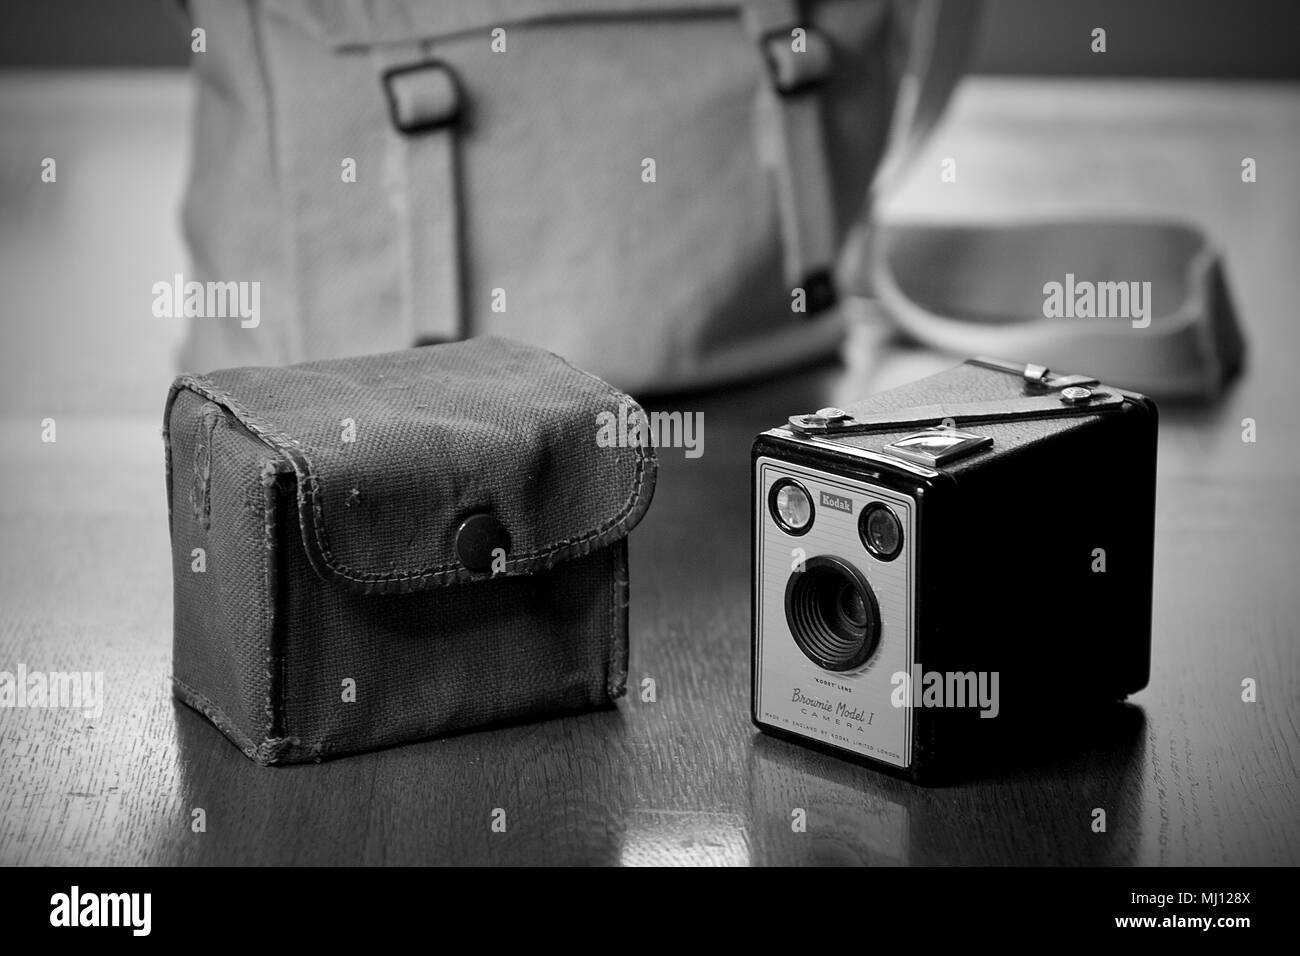 A Kodak Brownie Model 1 Camera and carry case. - Stock Image